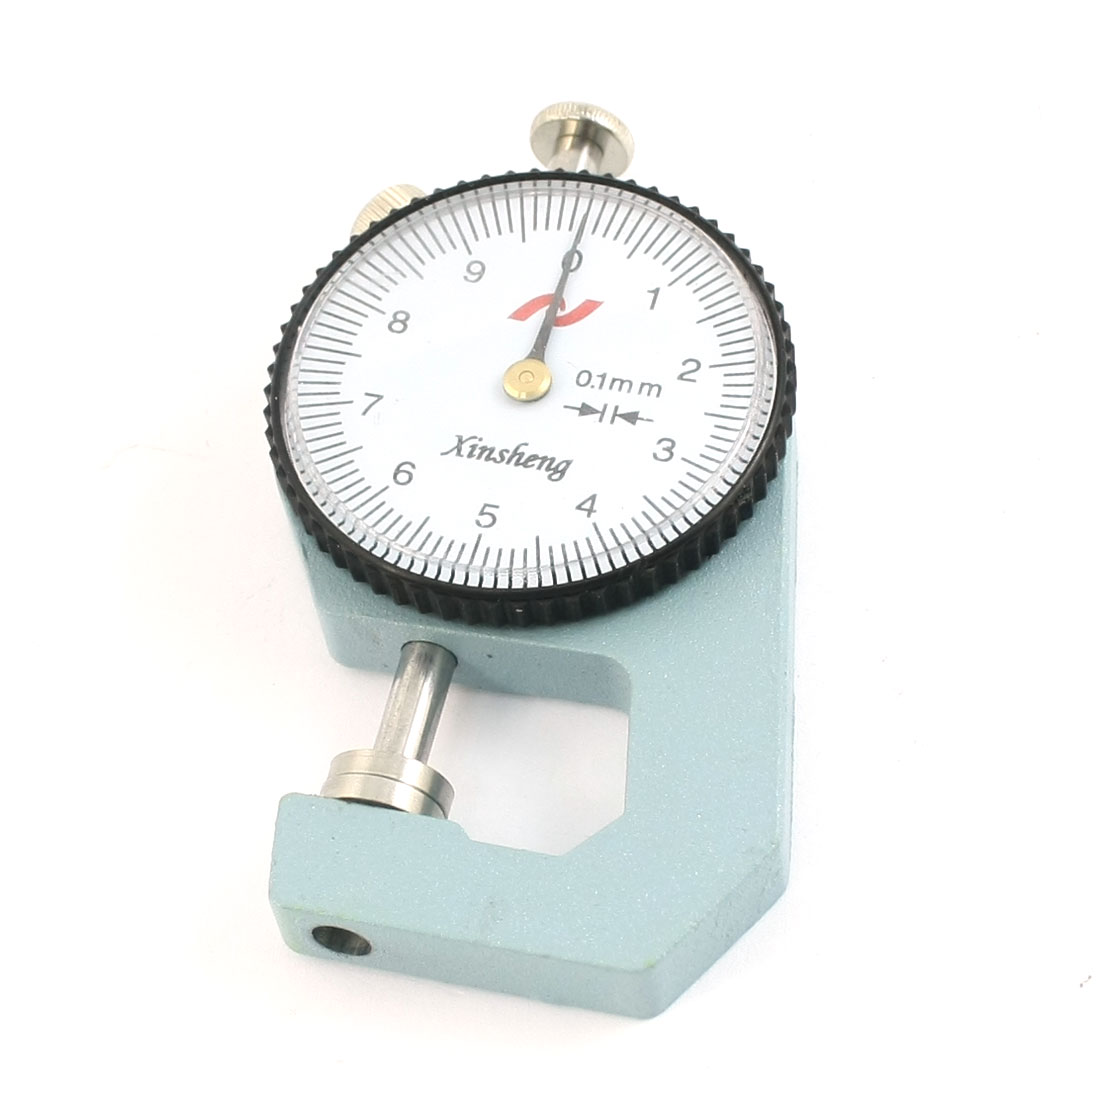 0-10mm x 0.1mm Precision Dial Thickness Gauge Measuring Tool w Rectangle Plastic Case